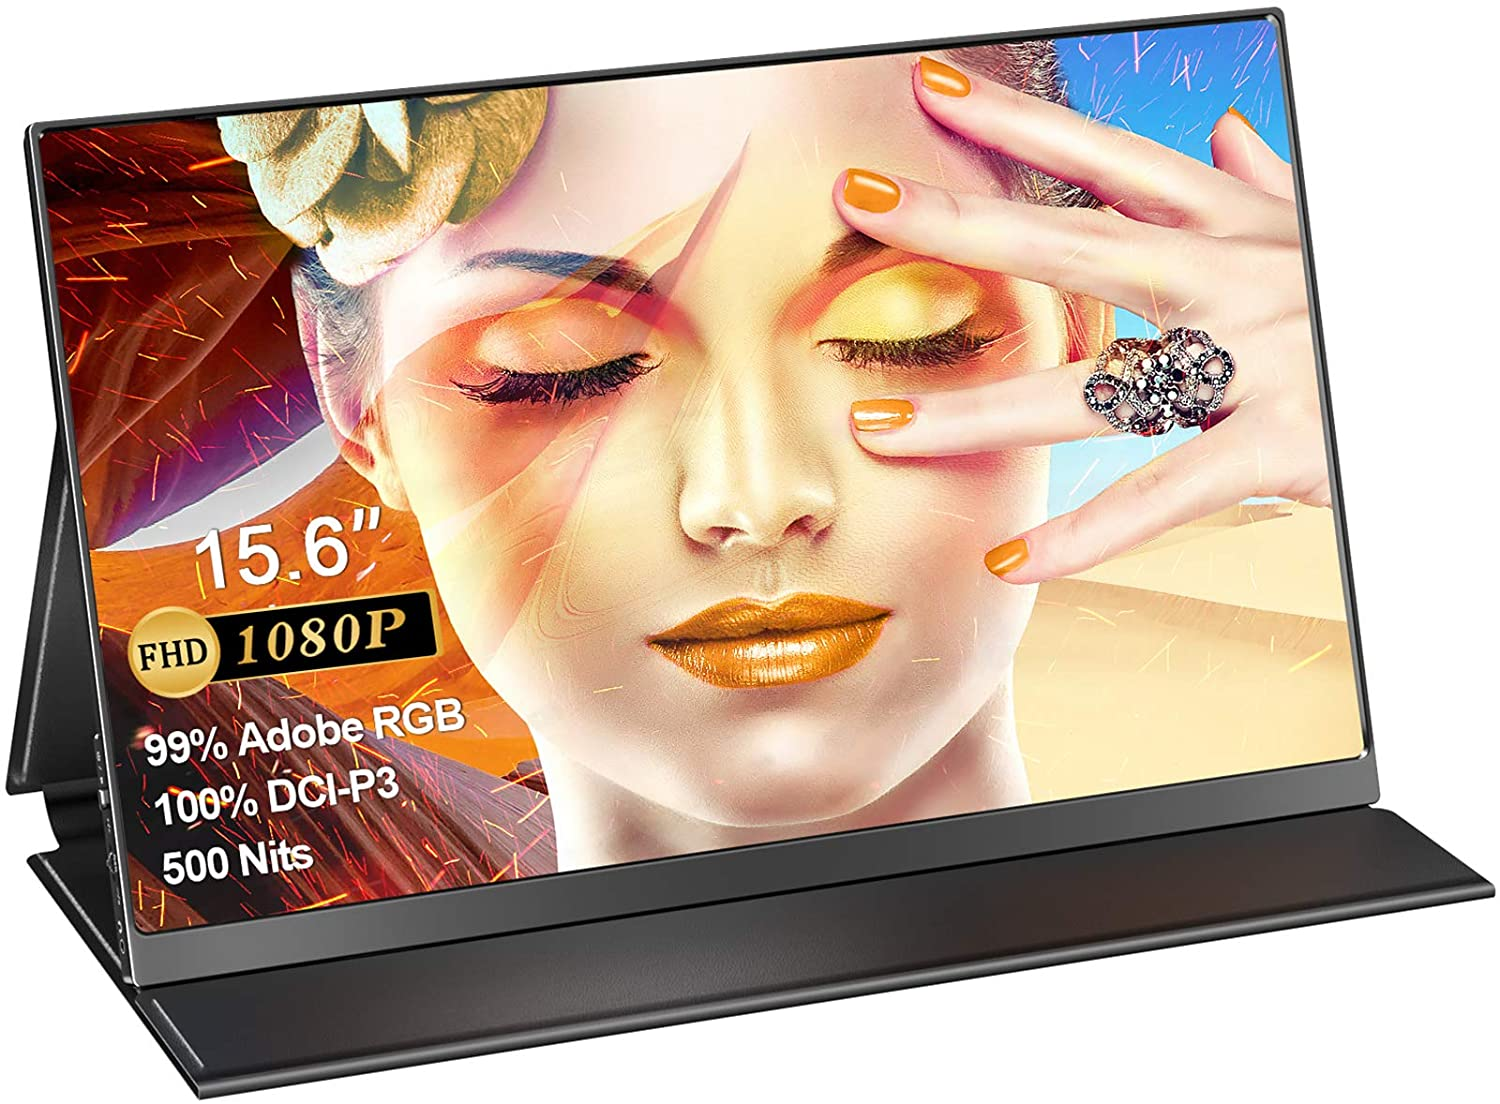 UPERFECT 15.6-Inch FHD Portable Monitor